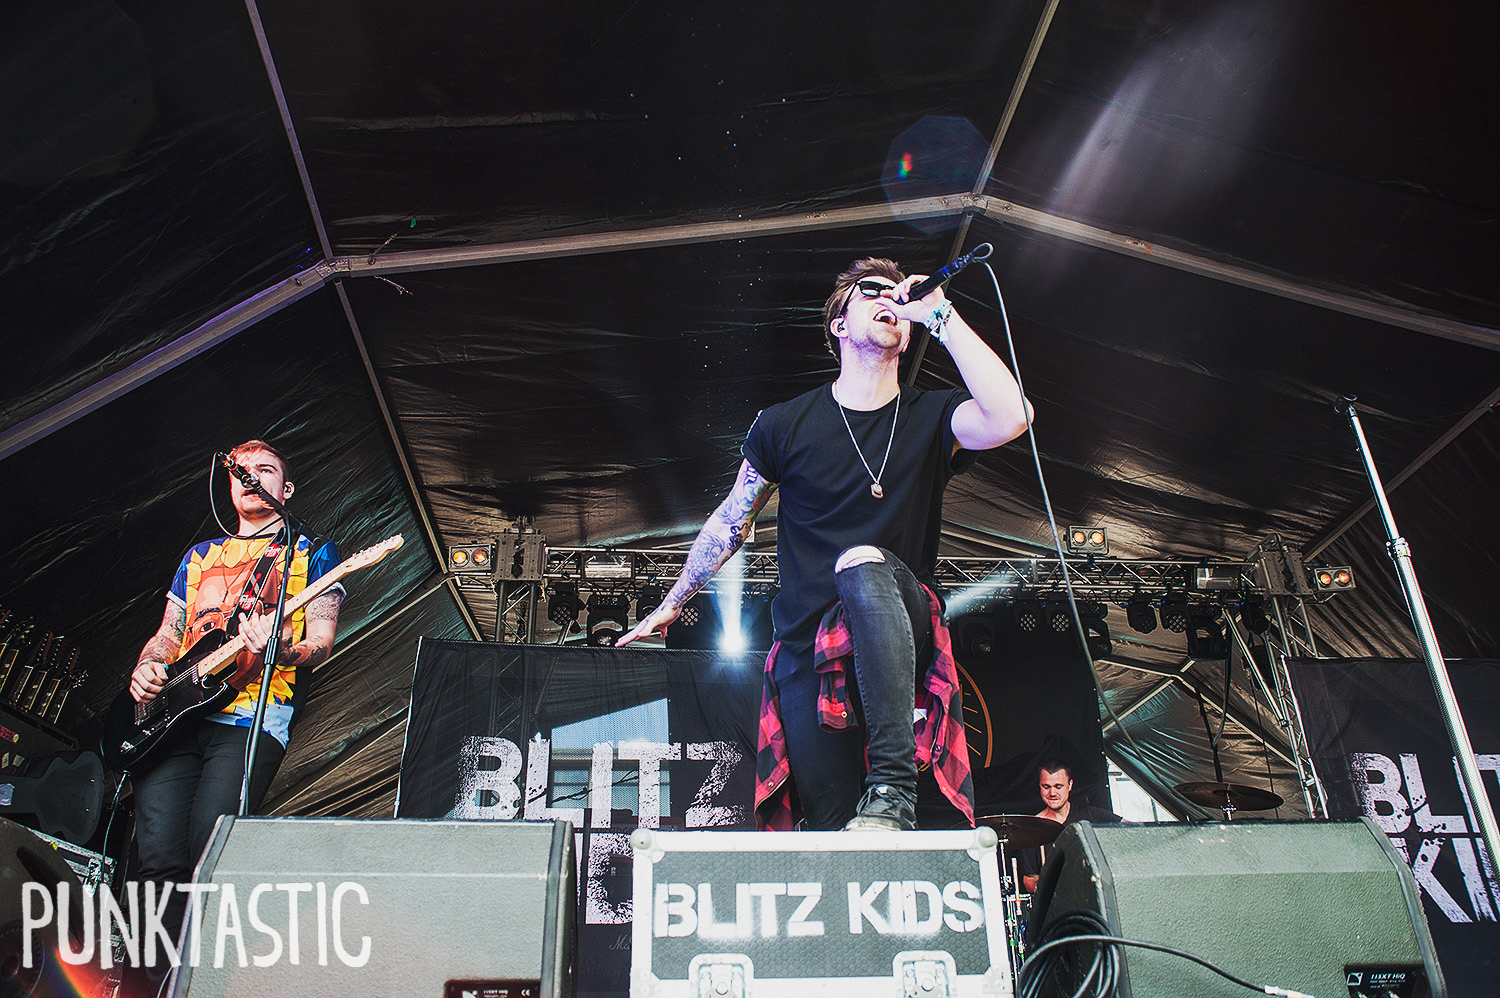 Blitz Kids opening up Main Stage.